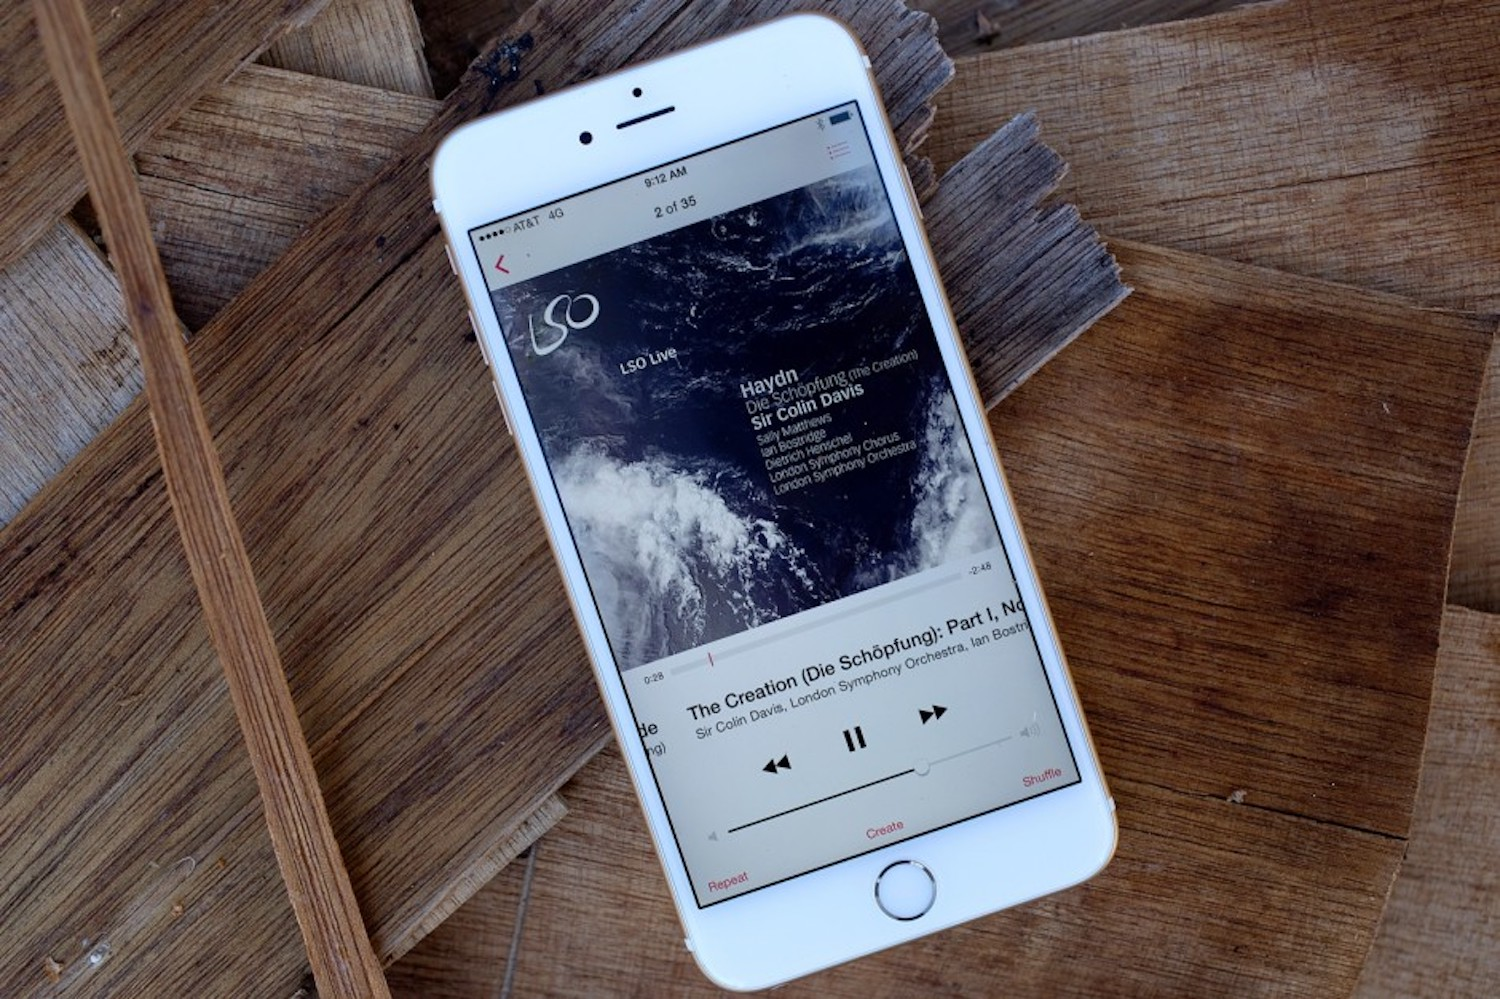 How has the Music app in iOS 10.2